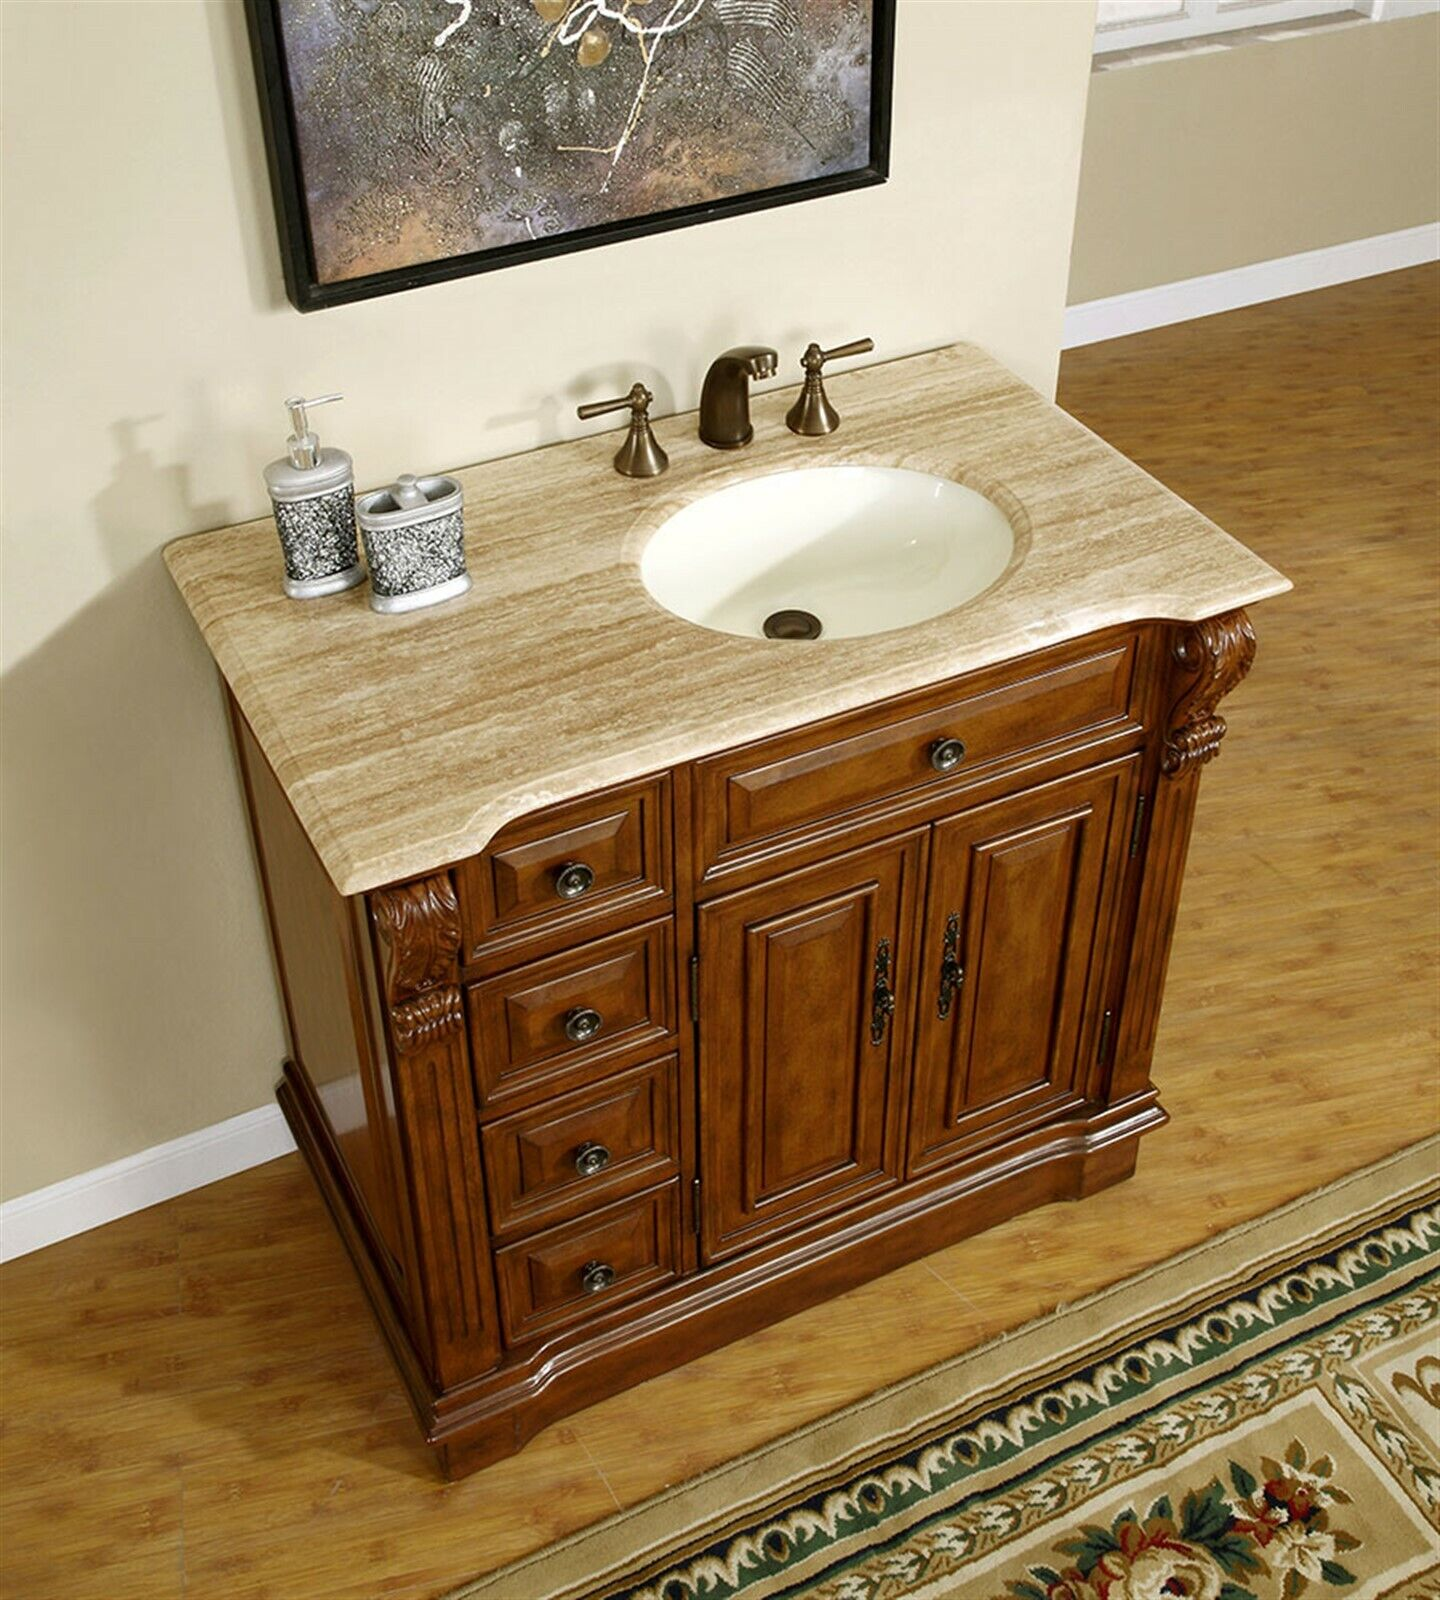 38-inch Travertine Top Bathroom Vanity Cabinet (Single ...